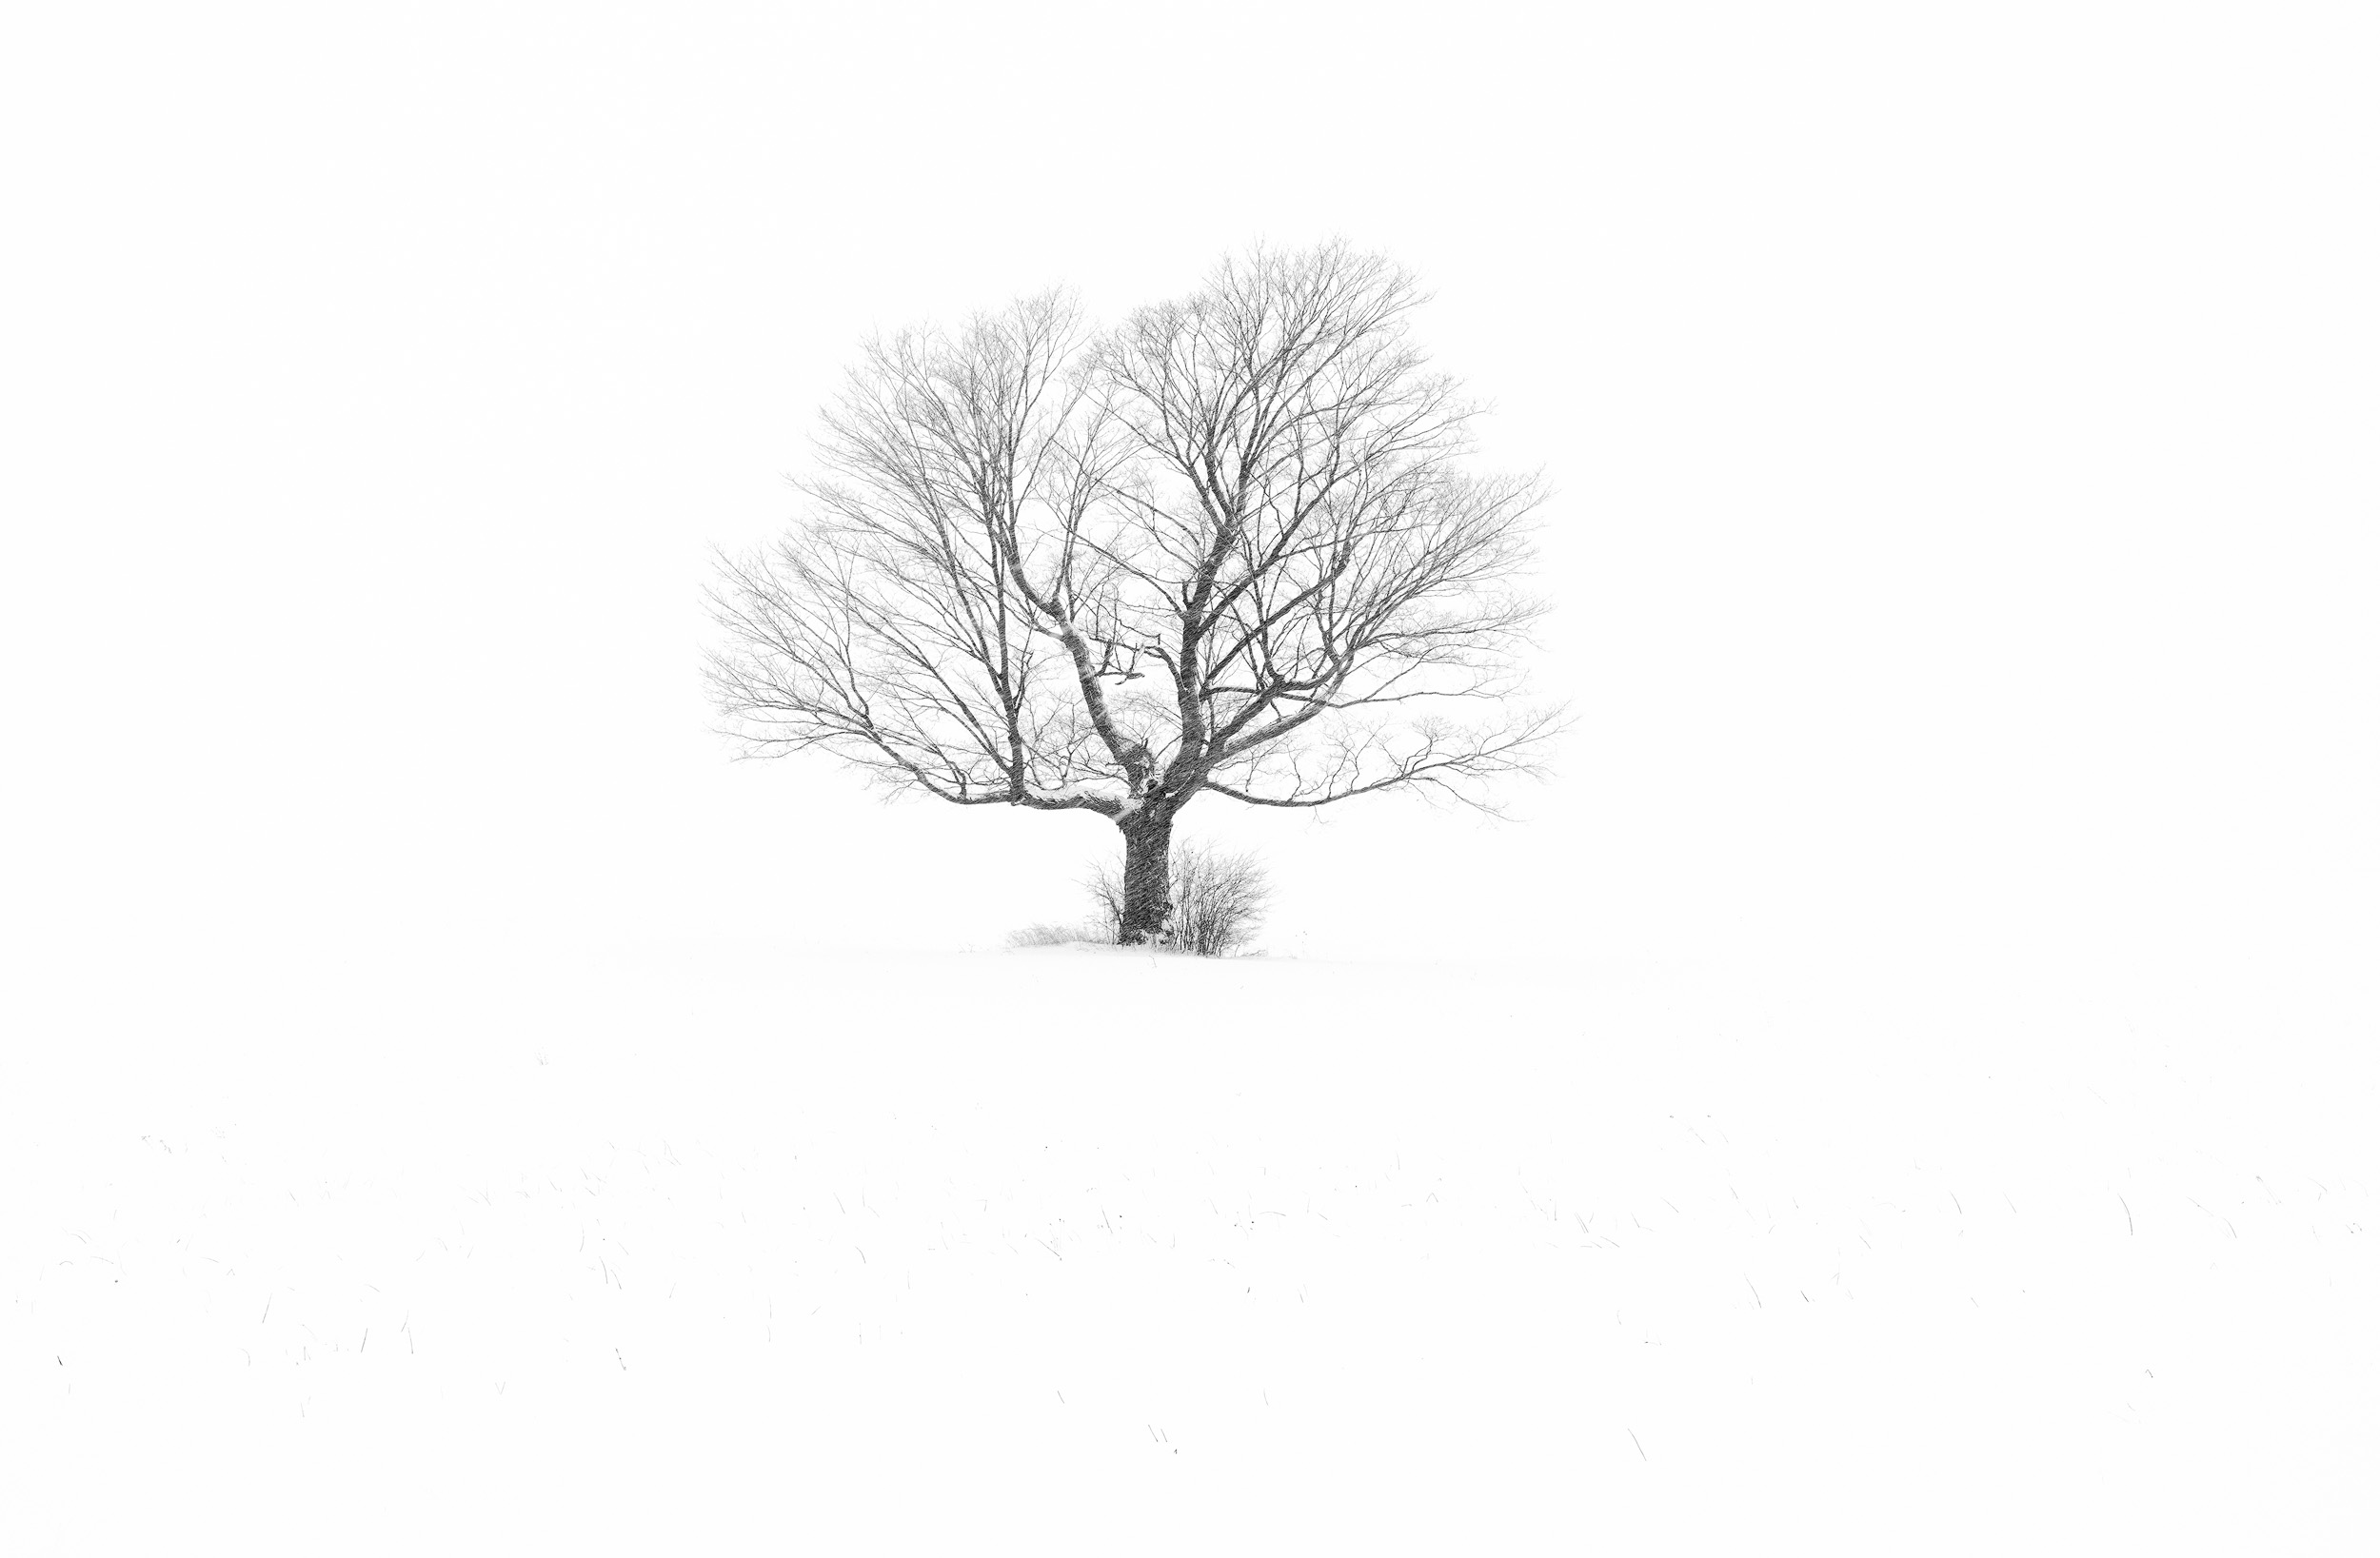 Isolated Winter Tree